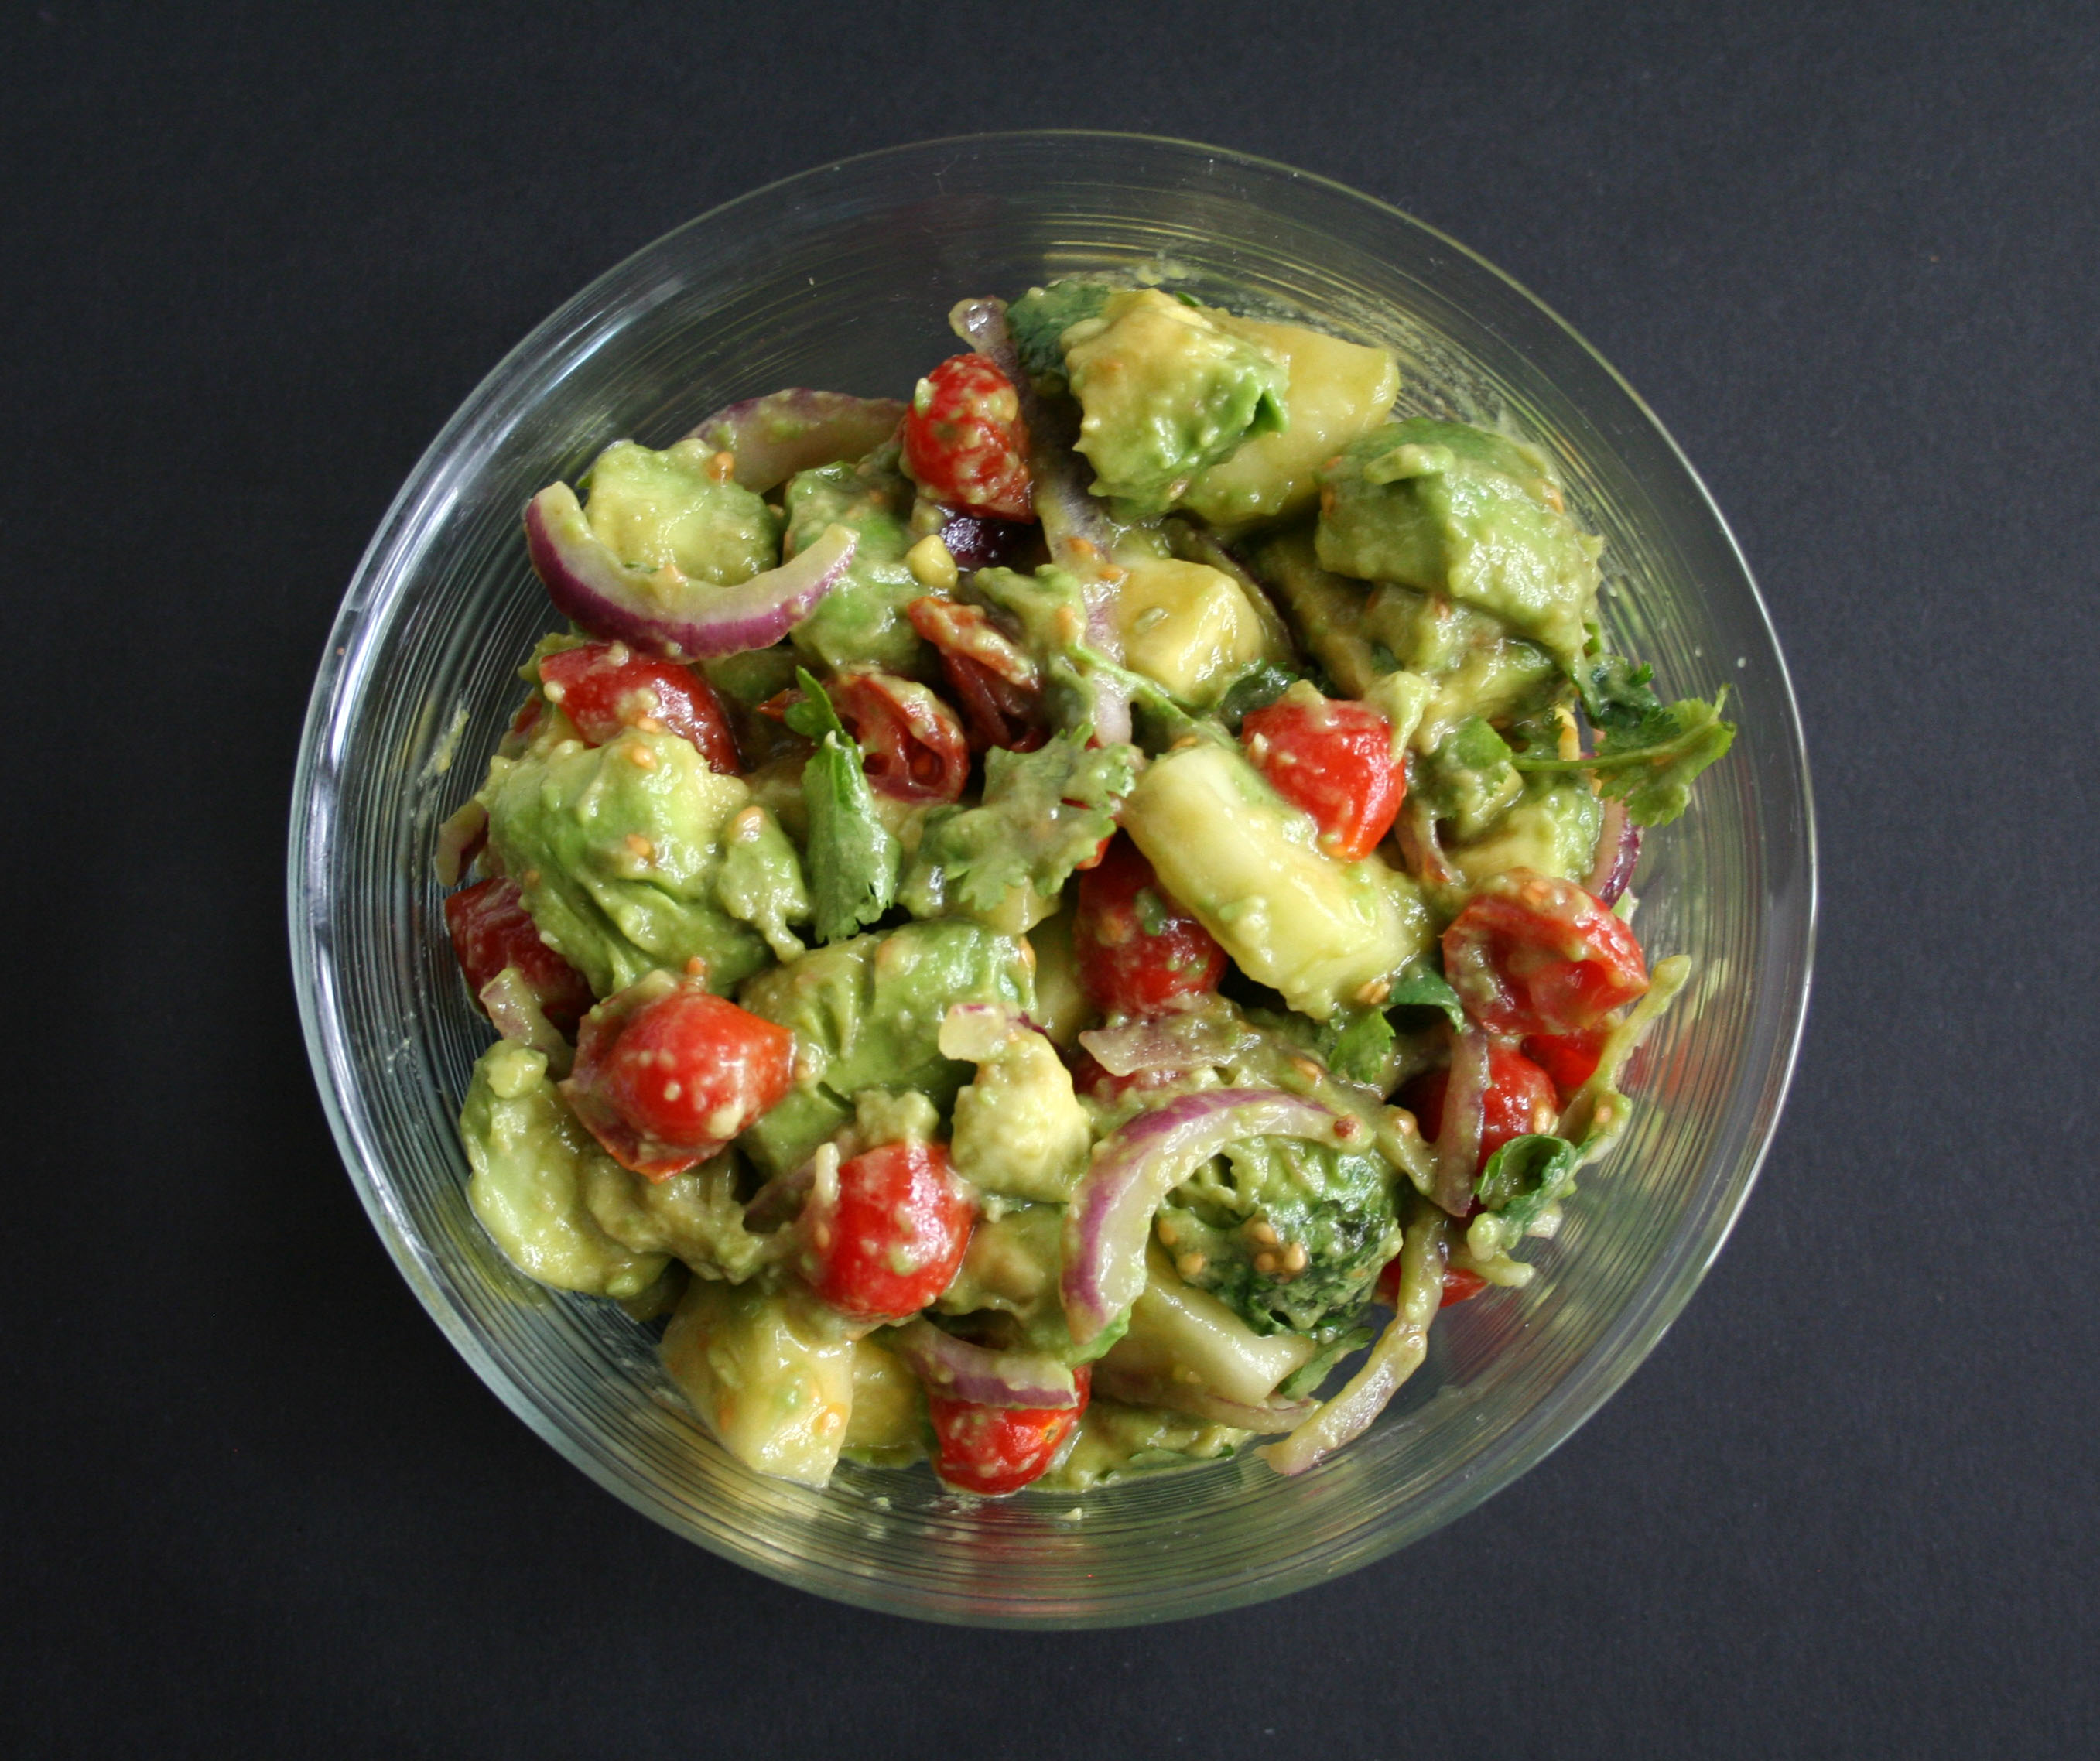 Avocado Cucumber Tomato Salad birds eye view.